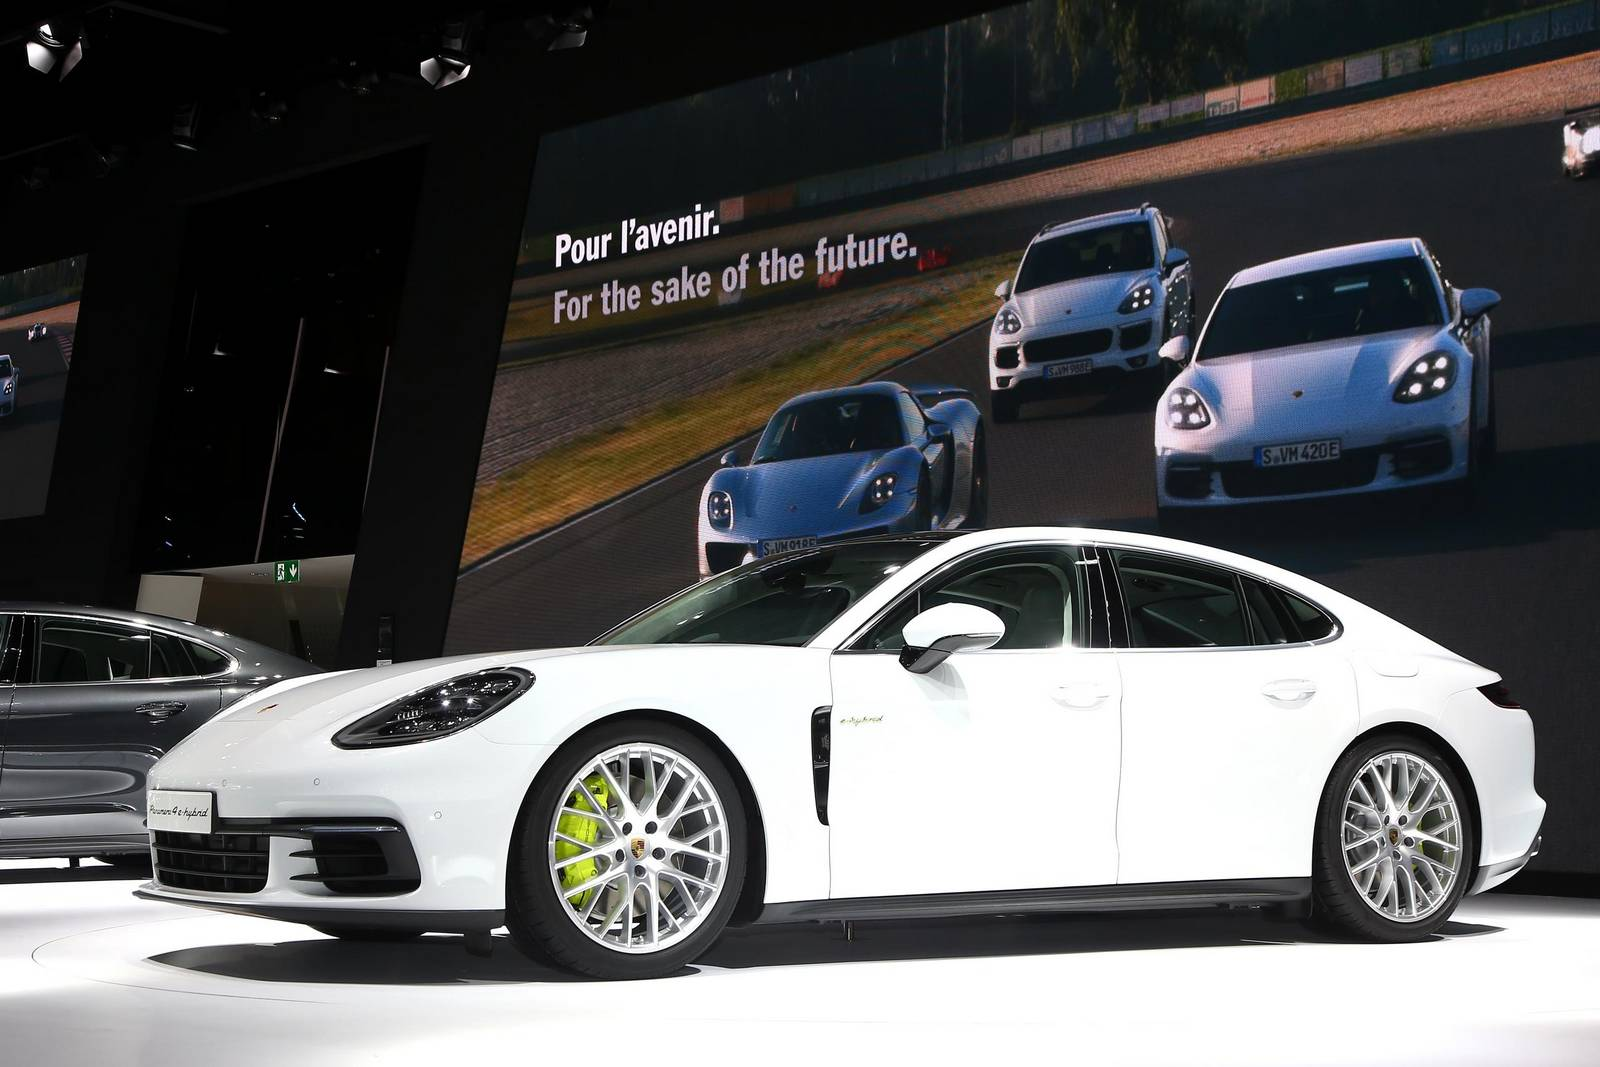 paris 2016 porsche panamera 4s e hybrid gtspirit. Black Bedroom Furniture Sets. Home Design Ideas